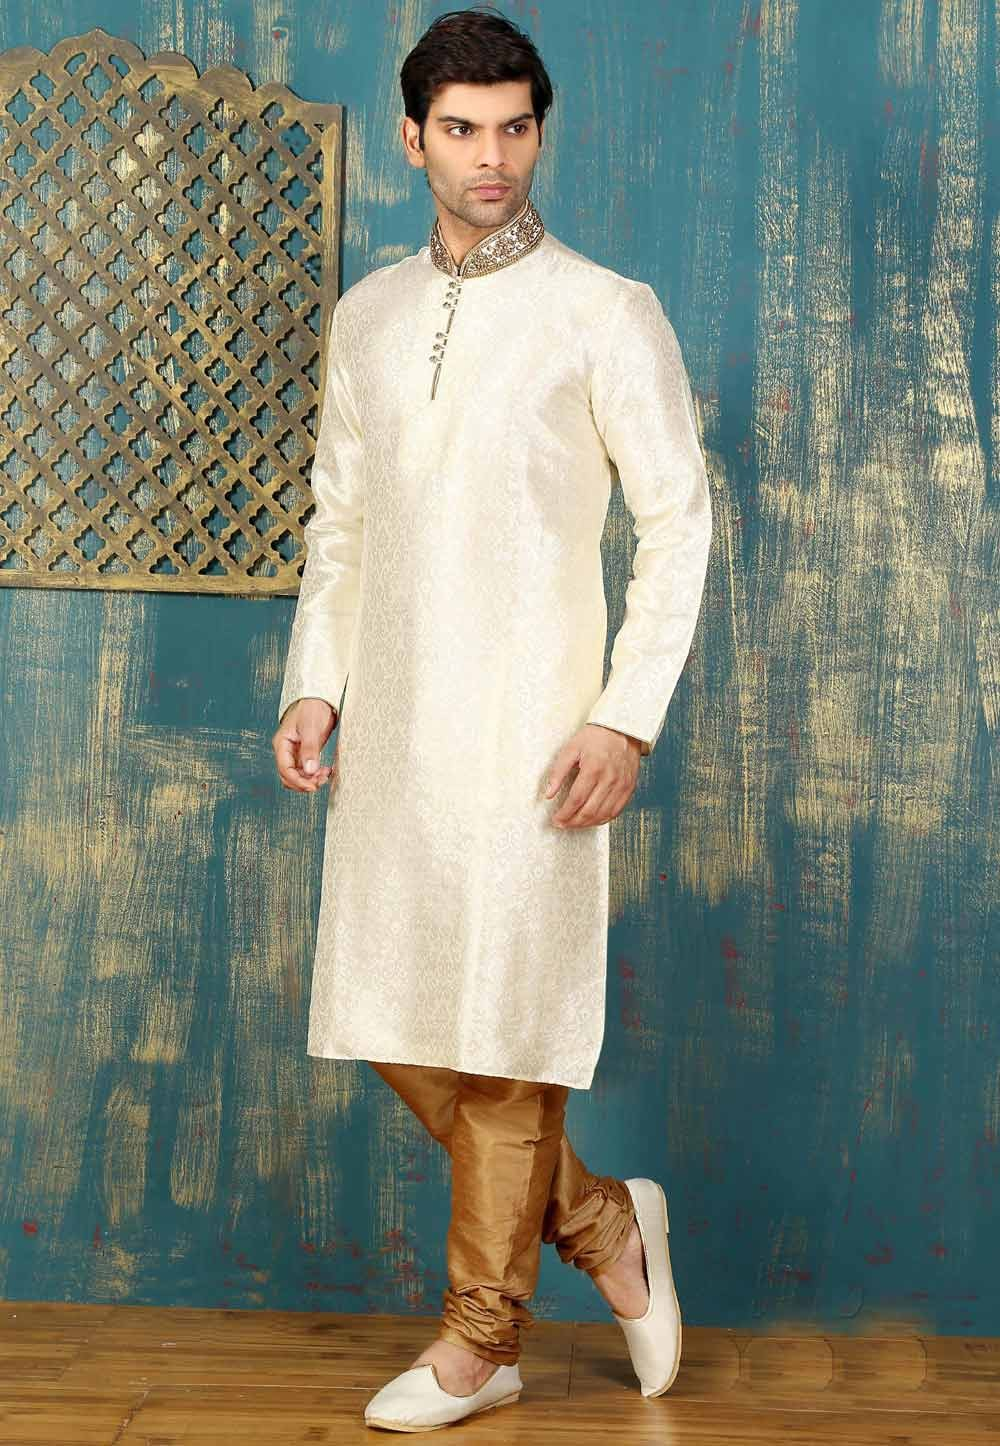 Exquisite Off White Color Satin,Brocade Readymade Kurta Pajama.